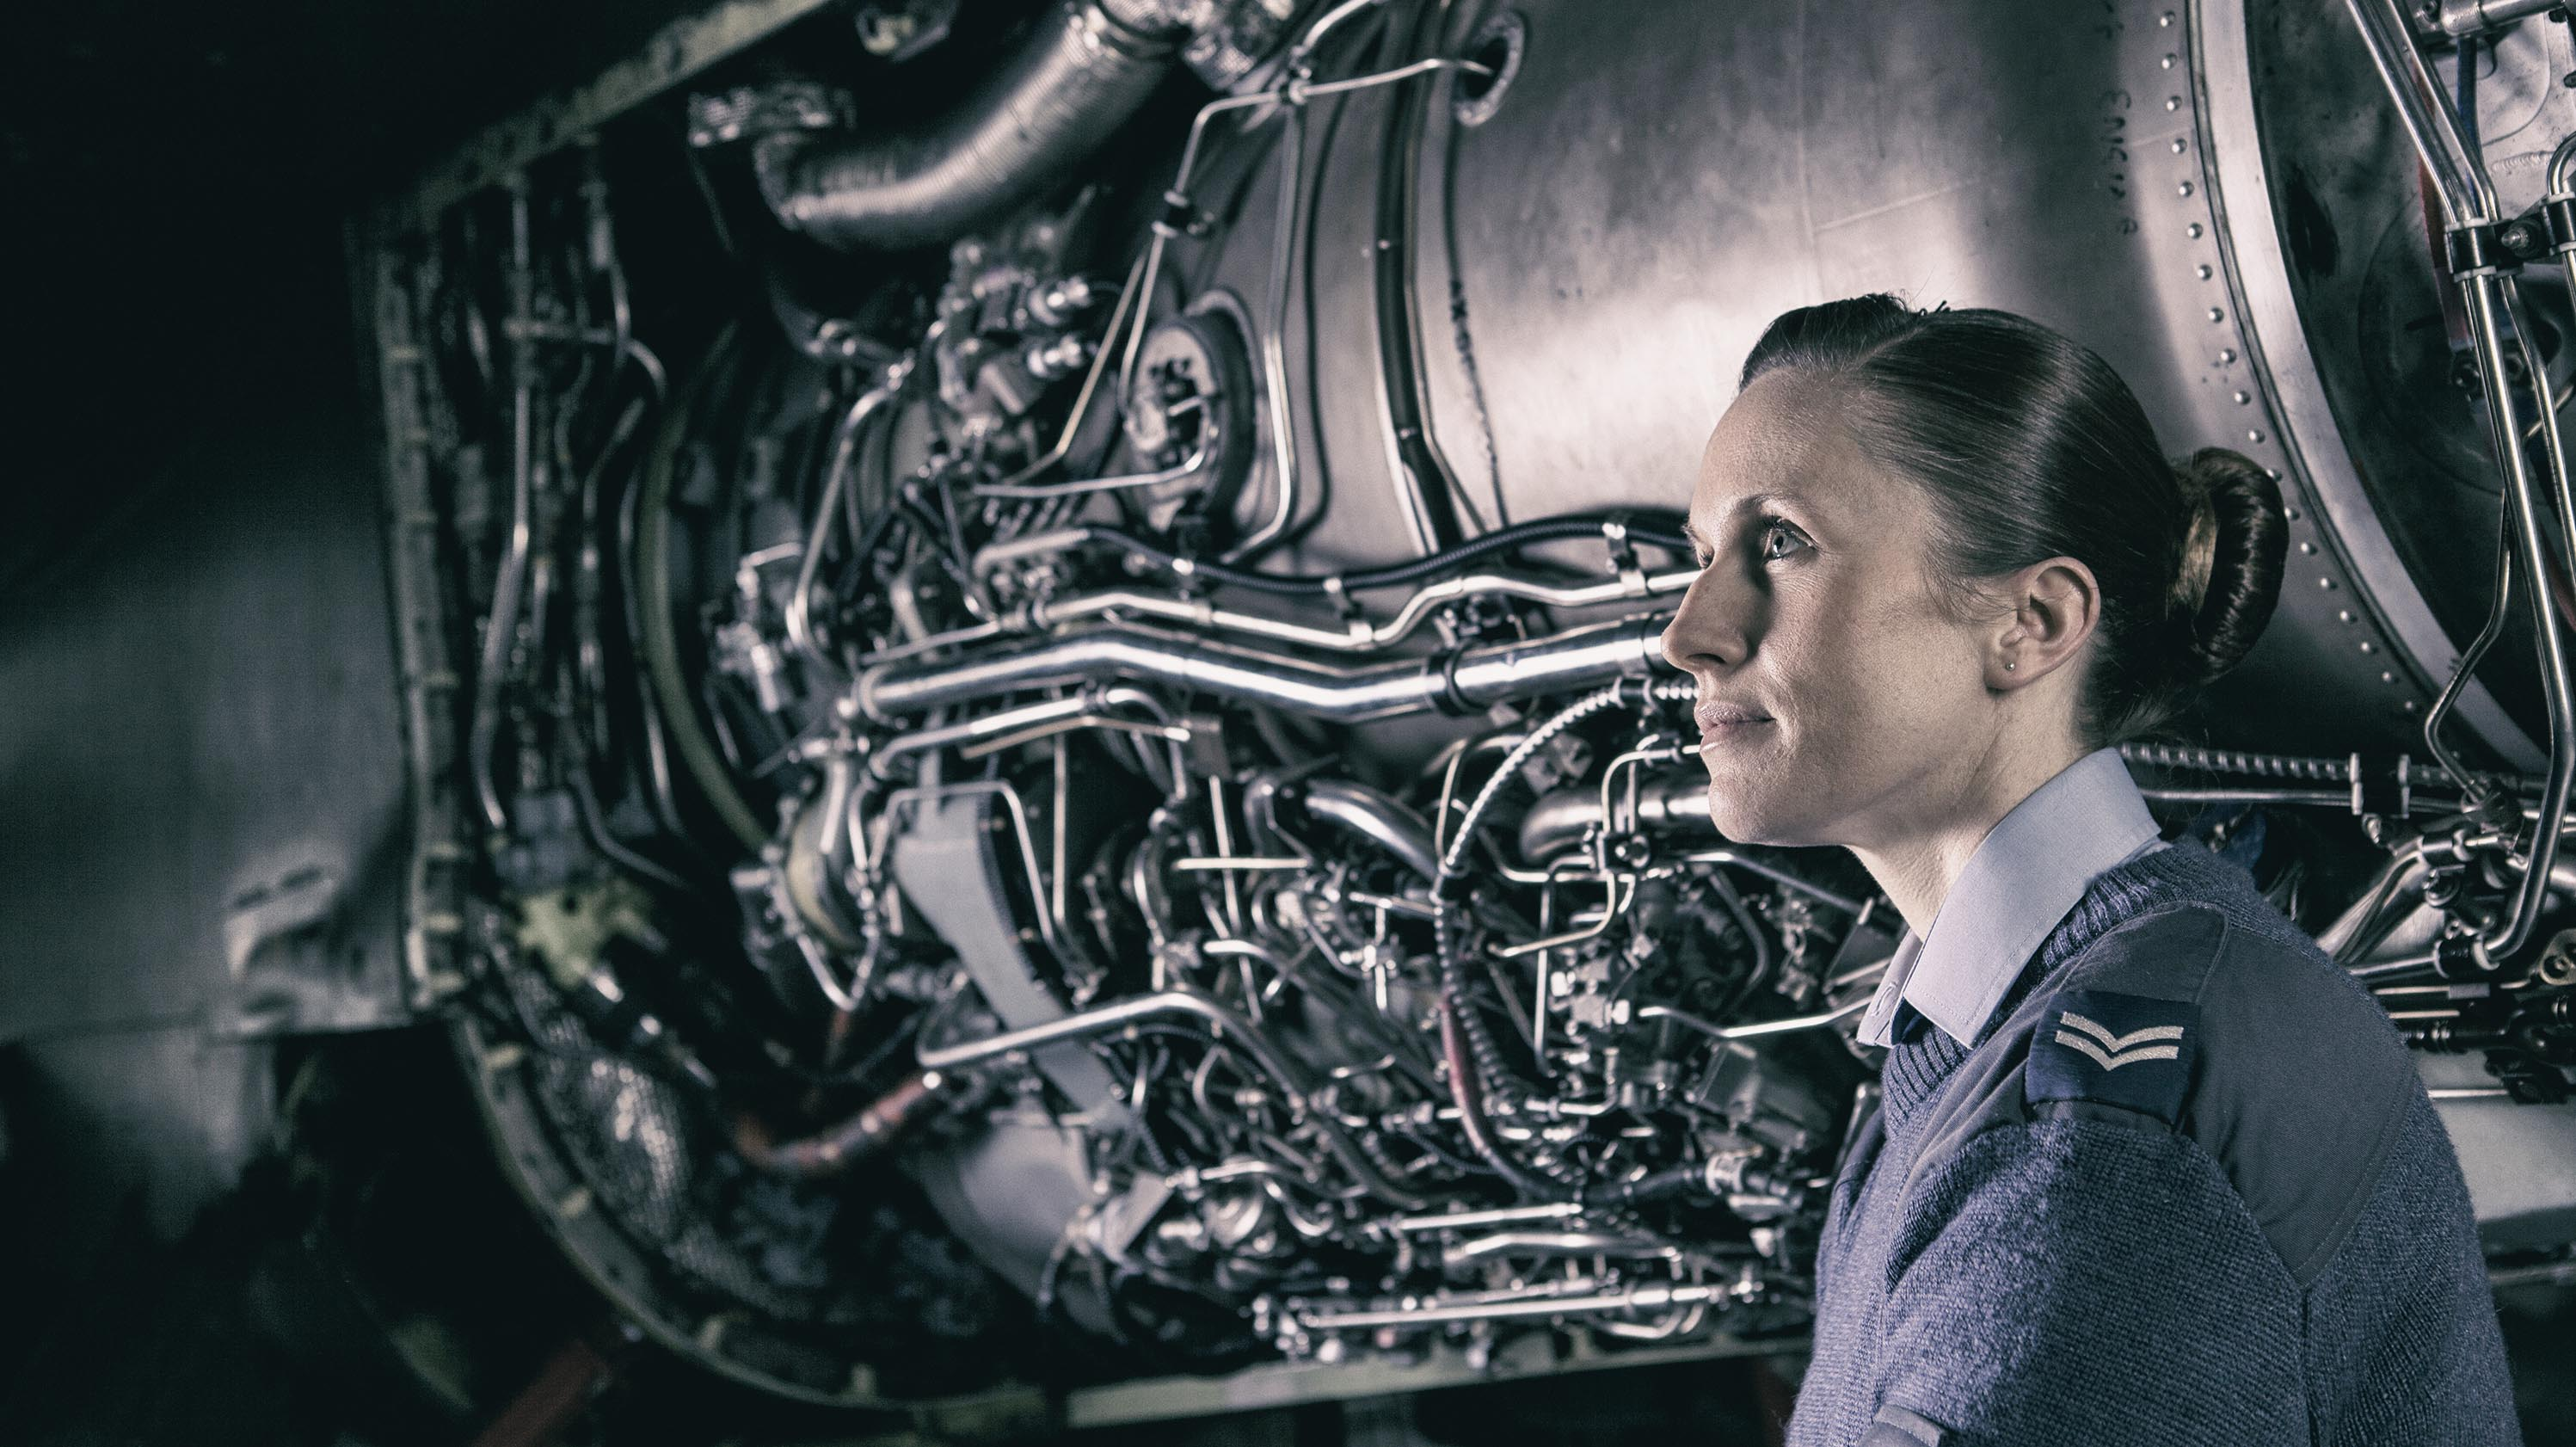 Industrial Photography Headshot of Woman Technician with Jet Plane engine in background at RAF Cosford © Paul Worpole Photography